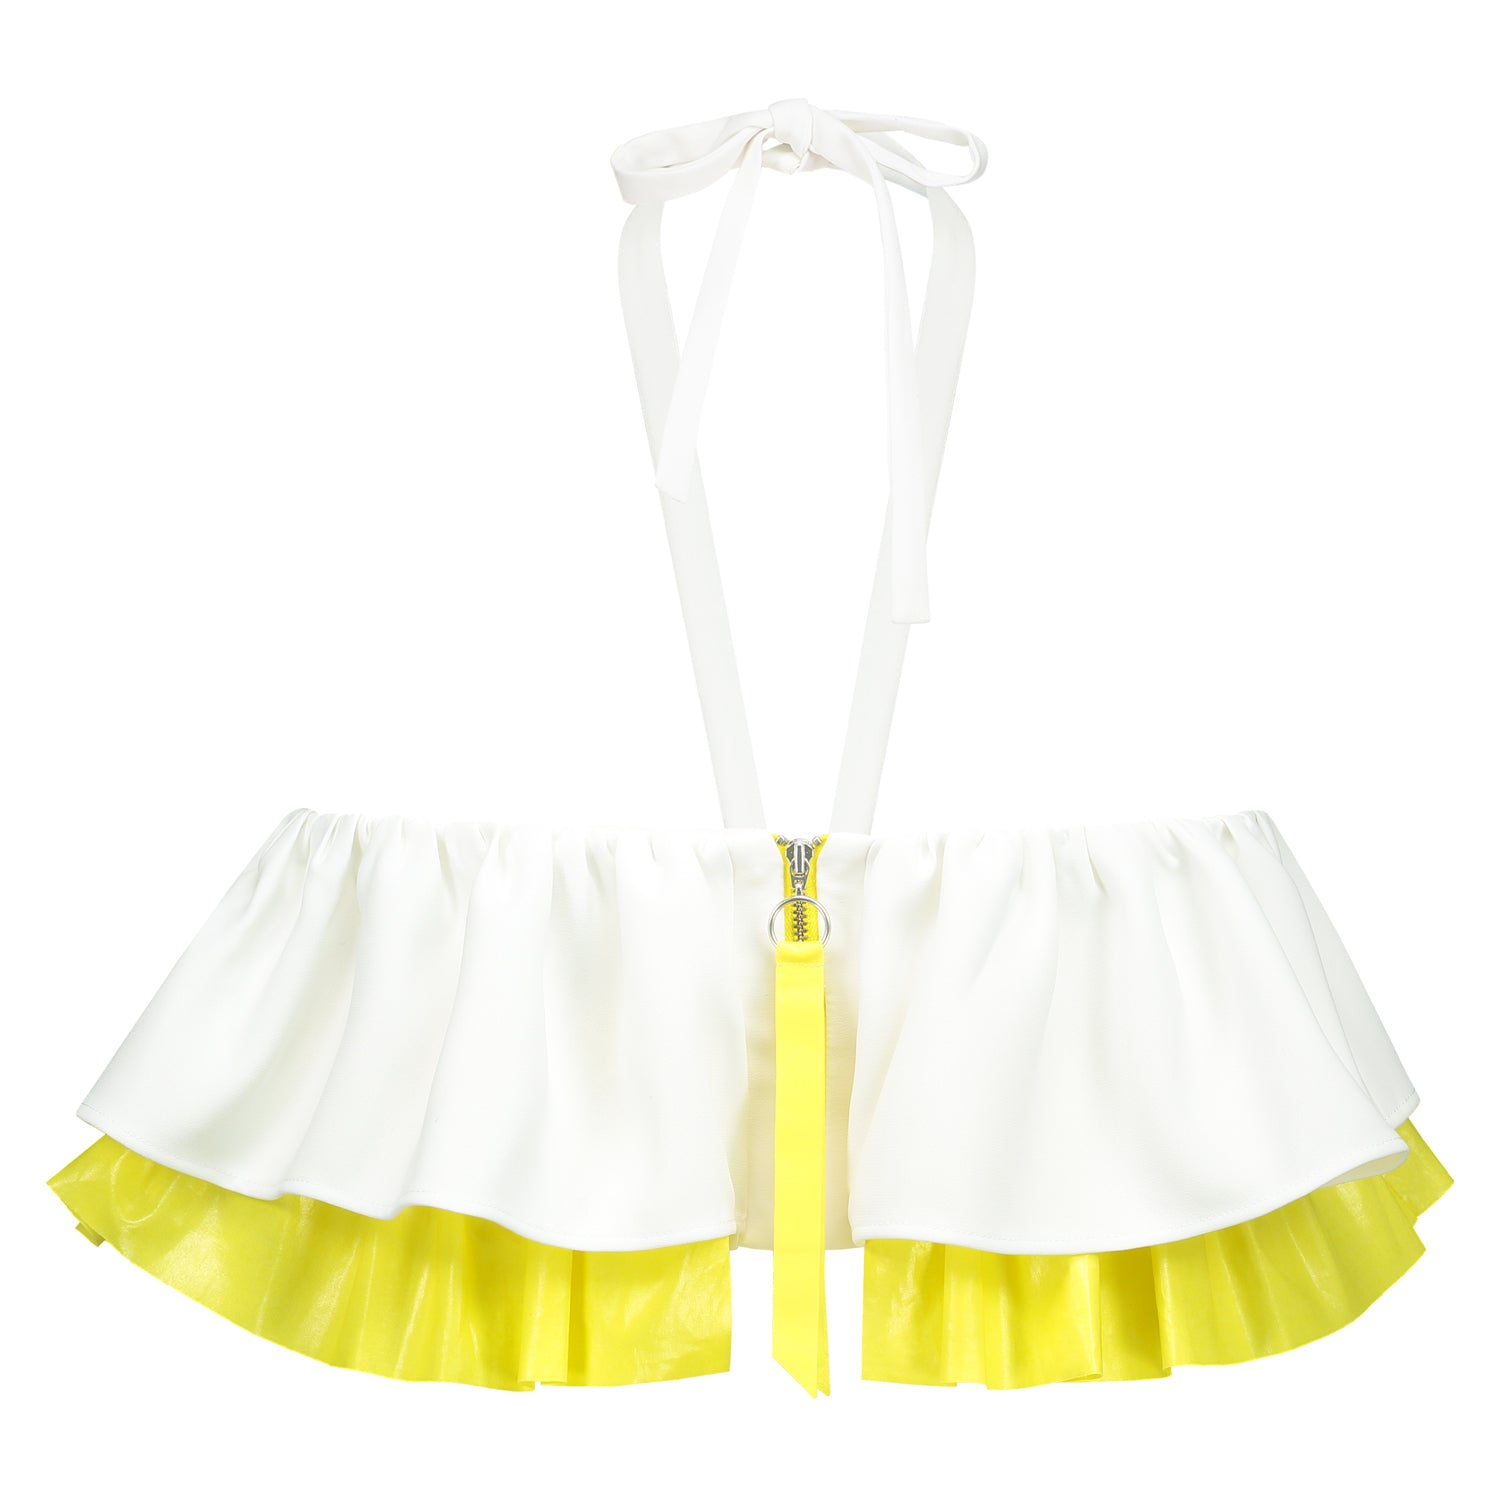 Endless Summer Crop Top - White by Blonde Gone Rogue on OOSTOR.com